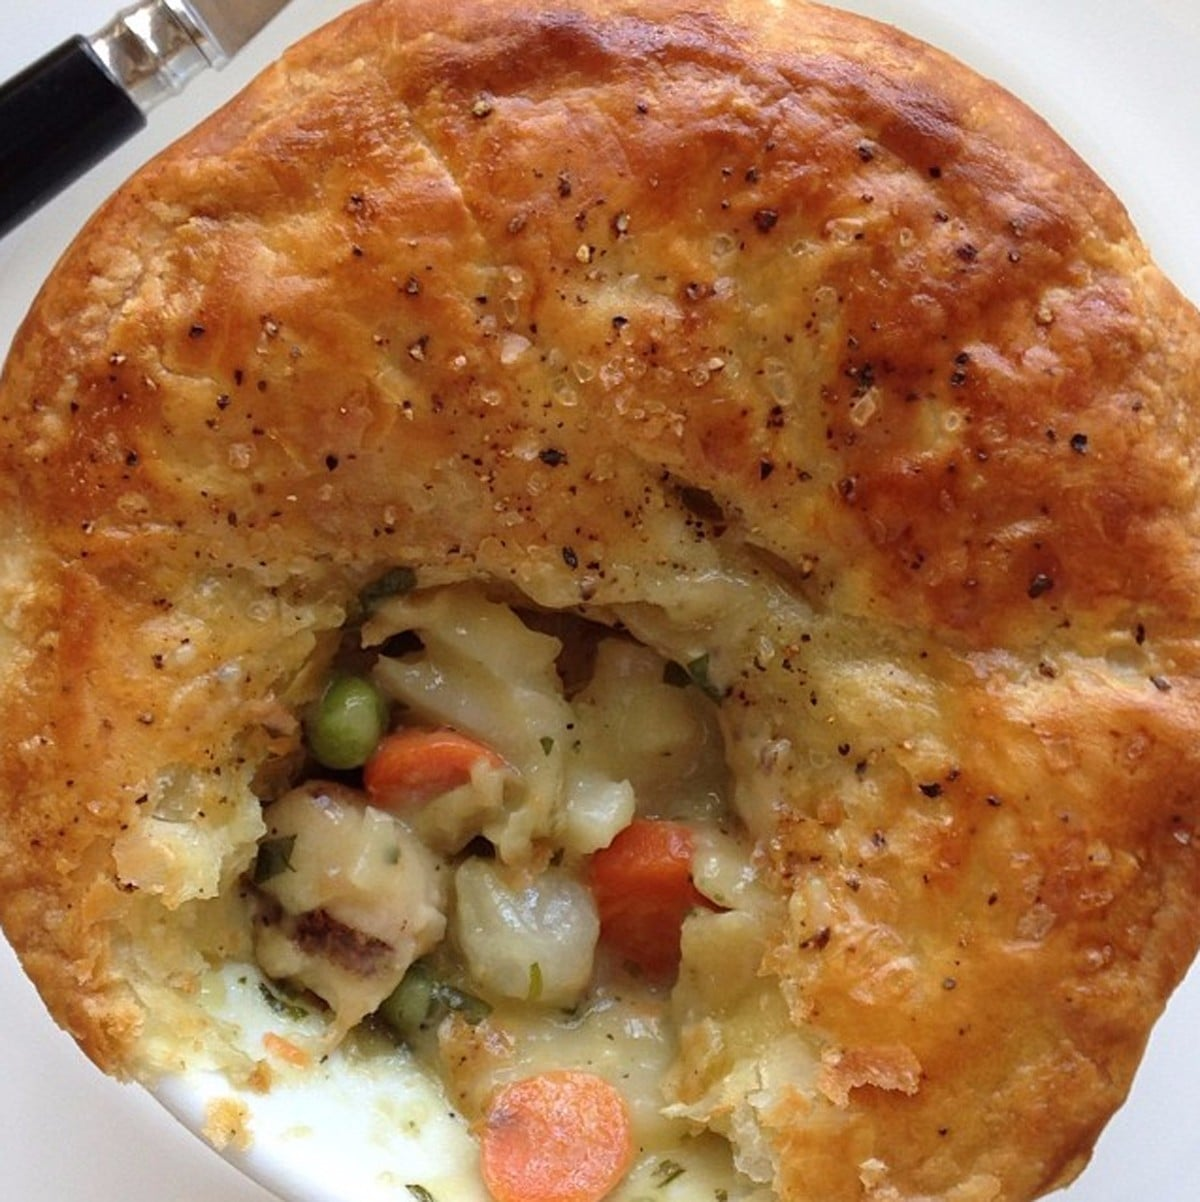 Turn soup into pot pie best comfort food recipes from barefoot best comfort food recipes from barefoot contessa popsugar food photo 5 forumfinder Choice Image